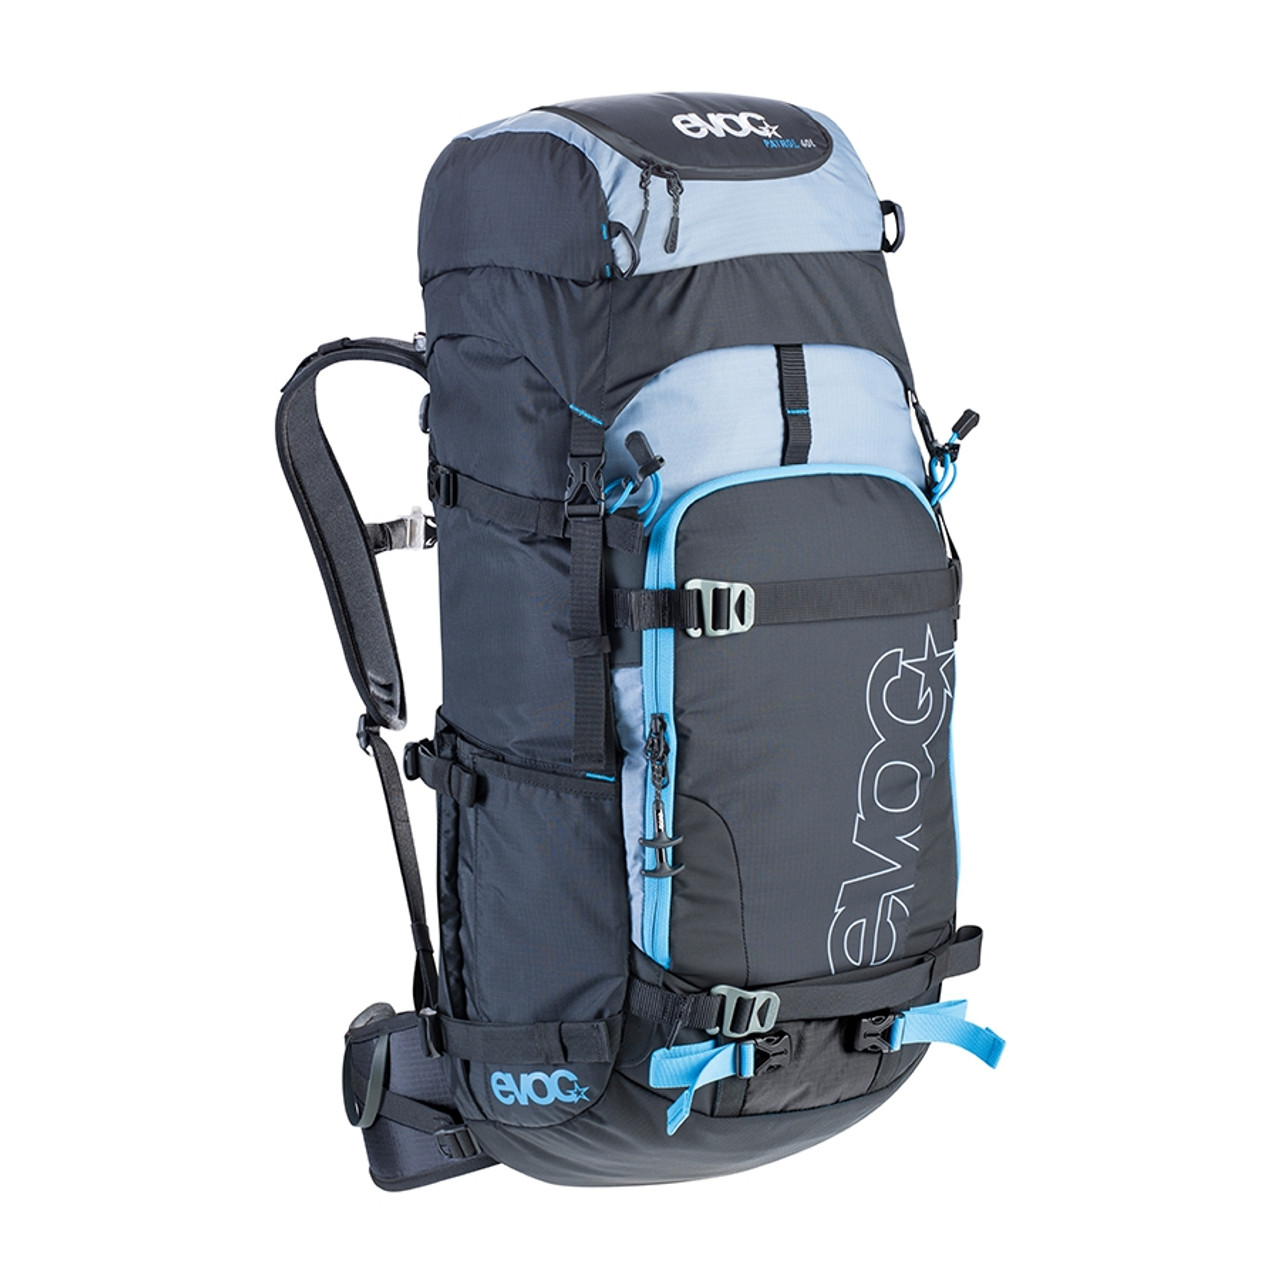 backcountry snowboard backpack